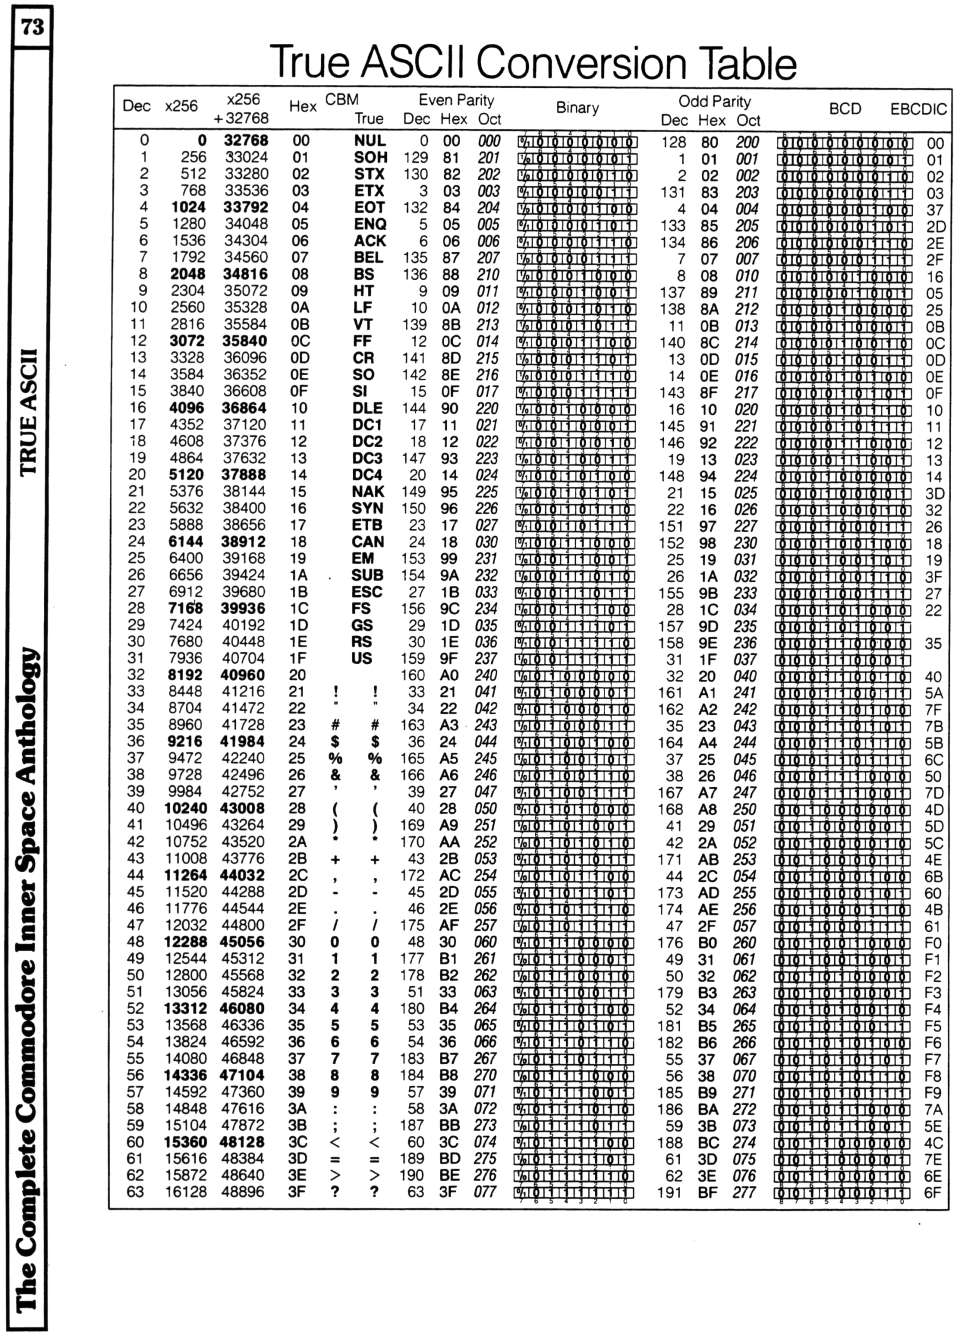 [960�1338 Video Section: True ASCII Conversion Table (1 of 2)]